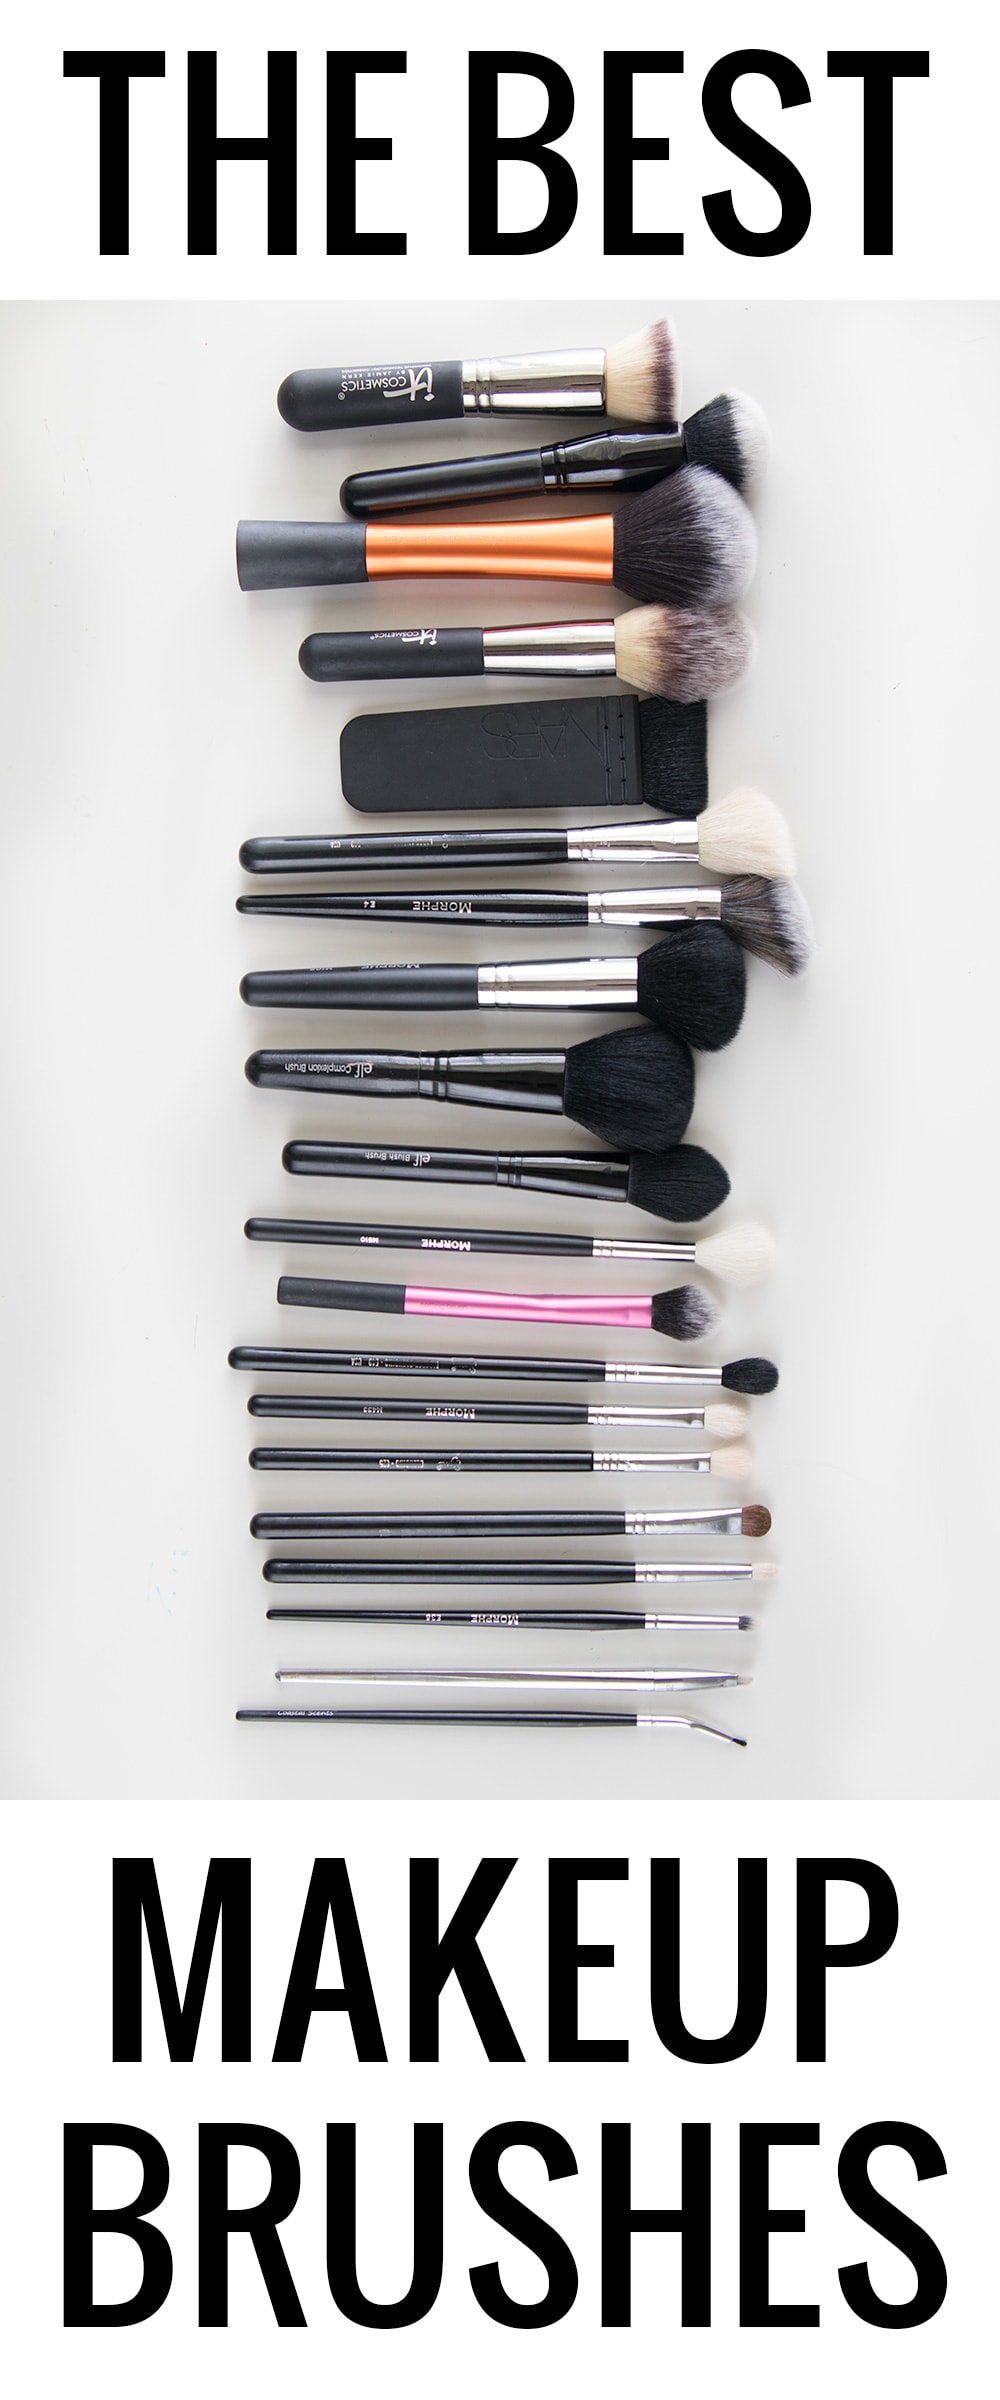 The Best Makeup Brushes Every Girl Needs in Her Collection by Houston beauty blogger Meg O. on the Go